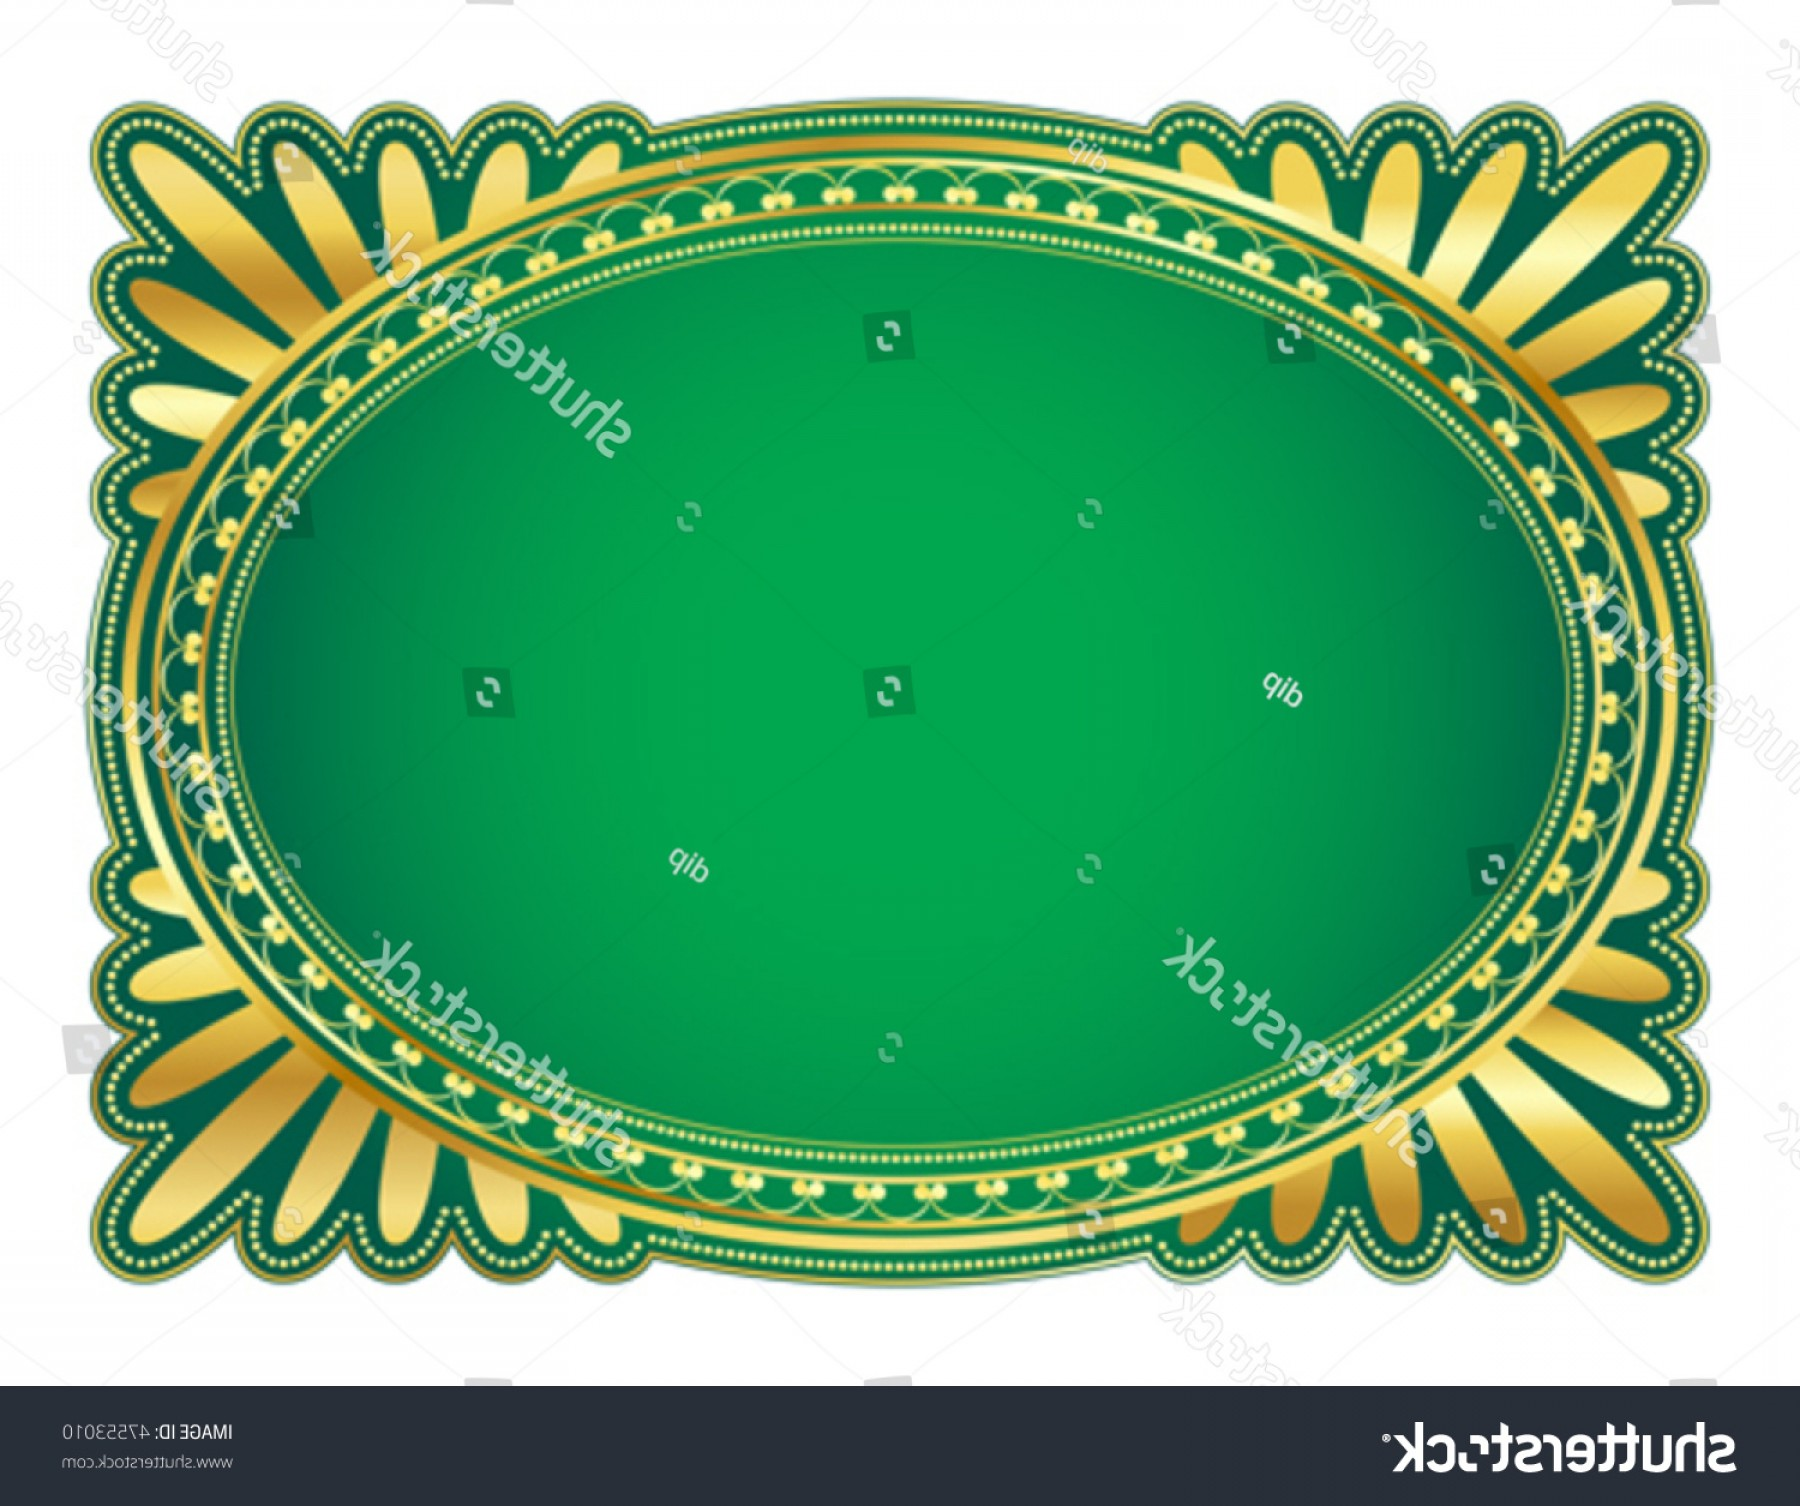 Filigree Oval Frame Vector: Elegant Oval Frame Decorative Filigree Illustration